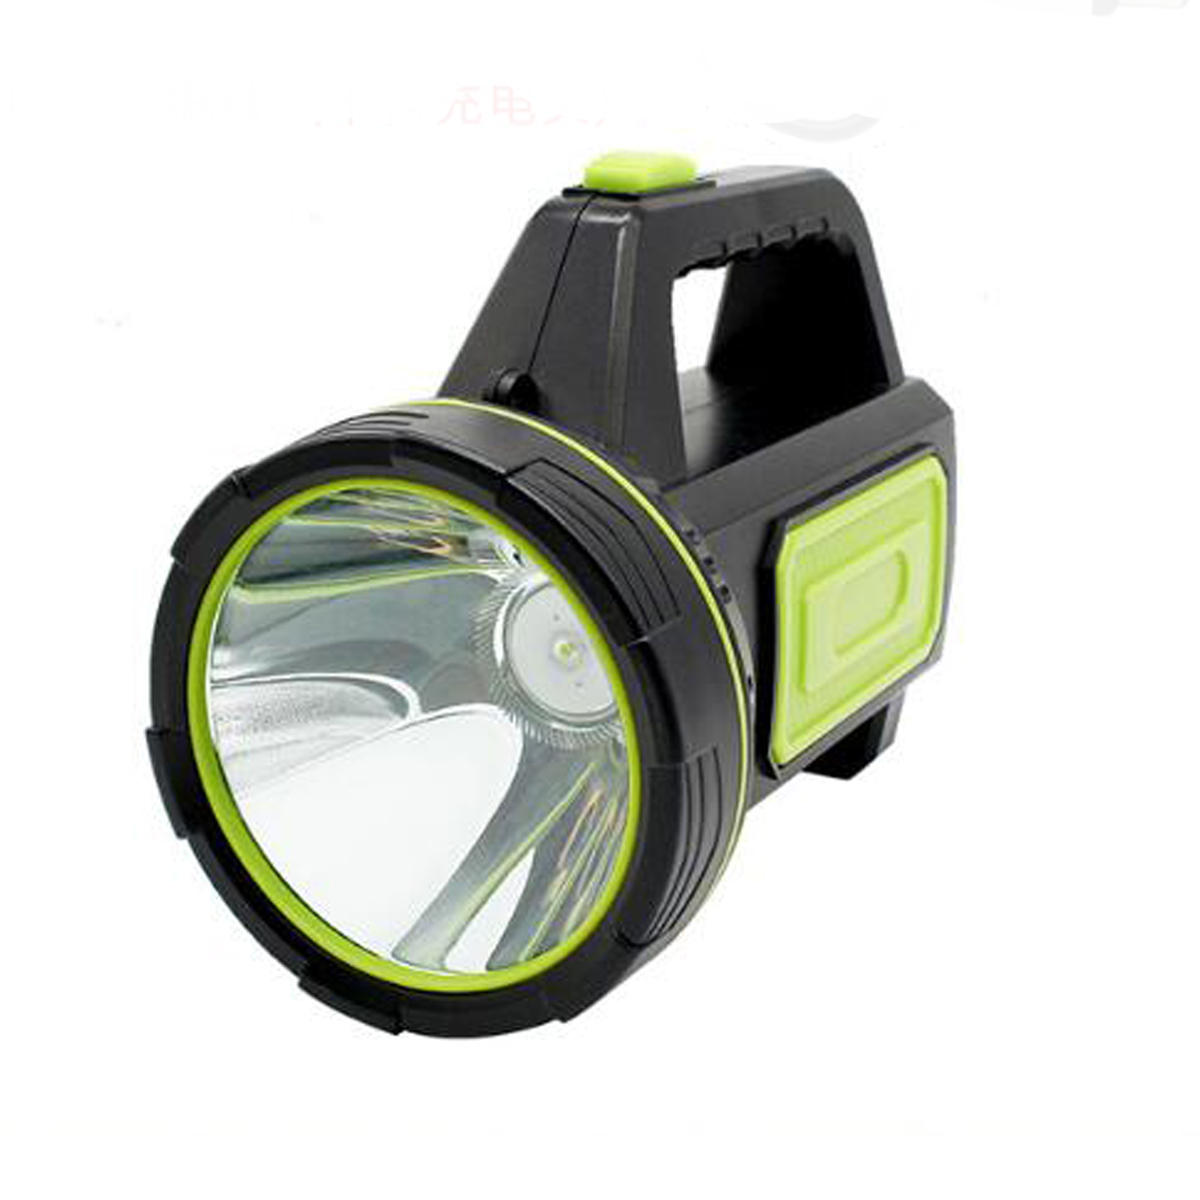 Portable Camping Light Super Bright Rechargeable Torch Flashlight Lamp for Outdoor Travel